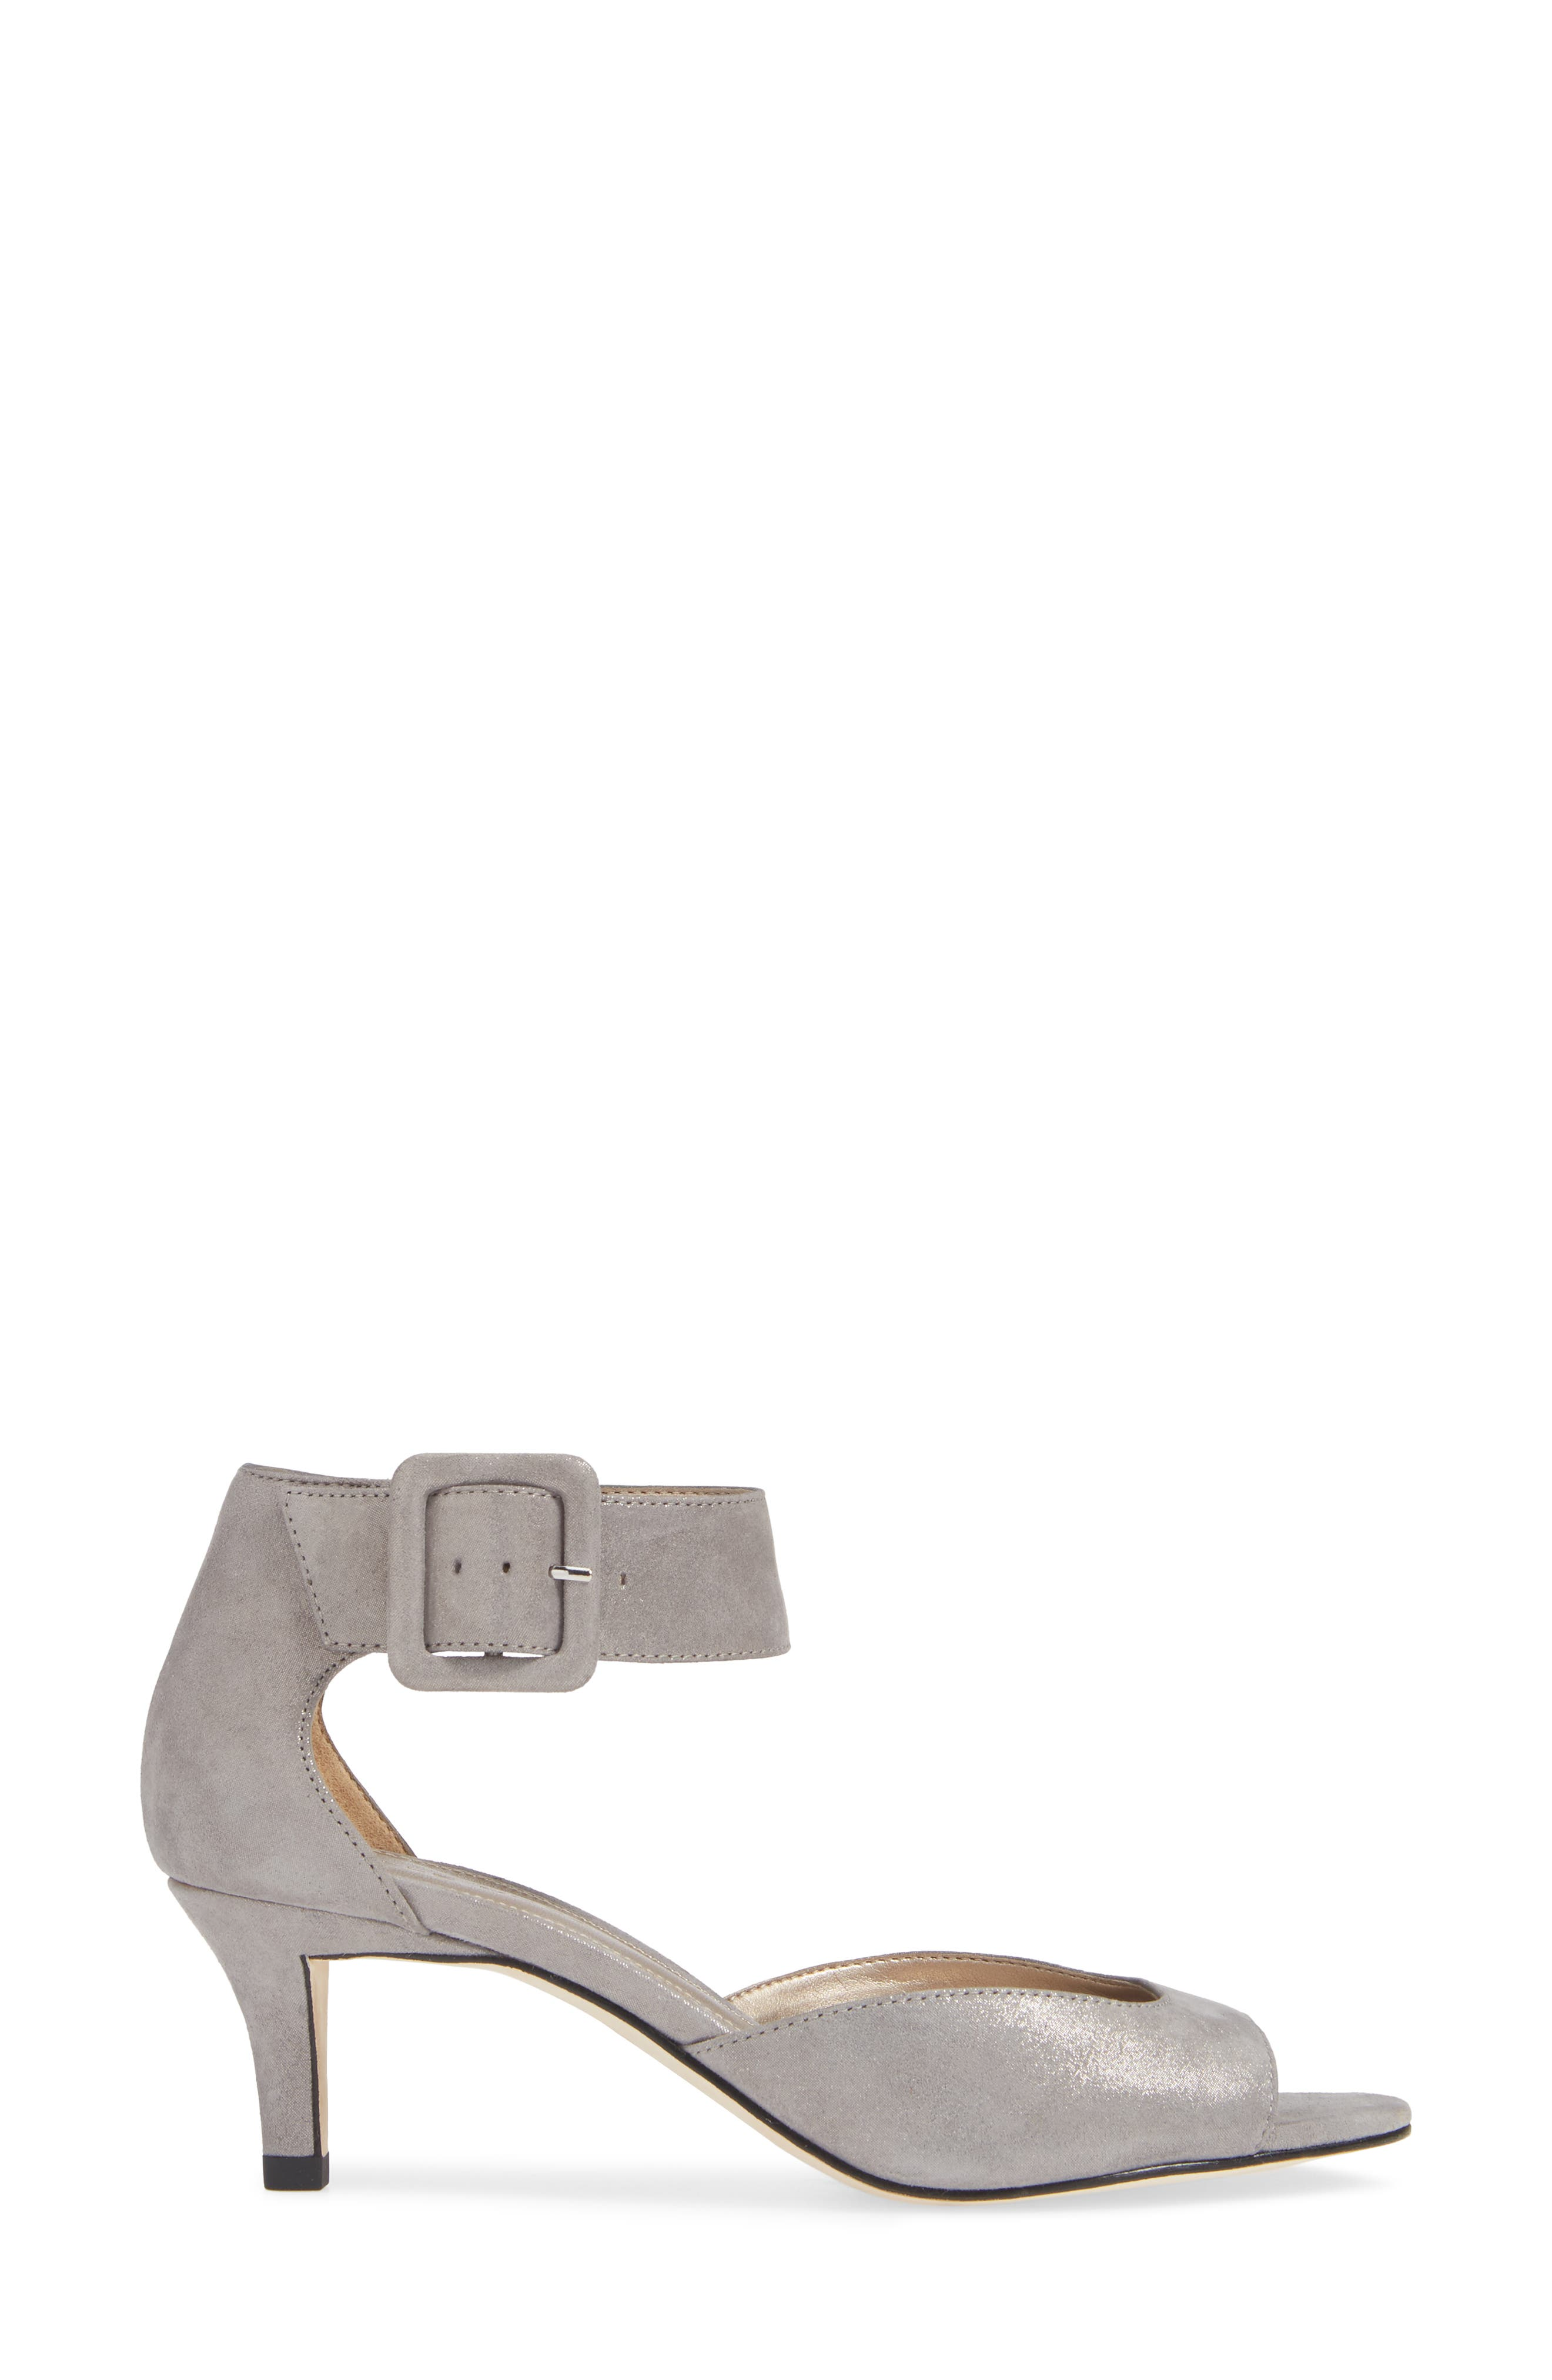 'Berlin' Sandal,                             Alternate thumbnail 3, color,                             PEWTER SUEDE